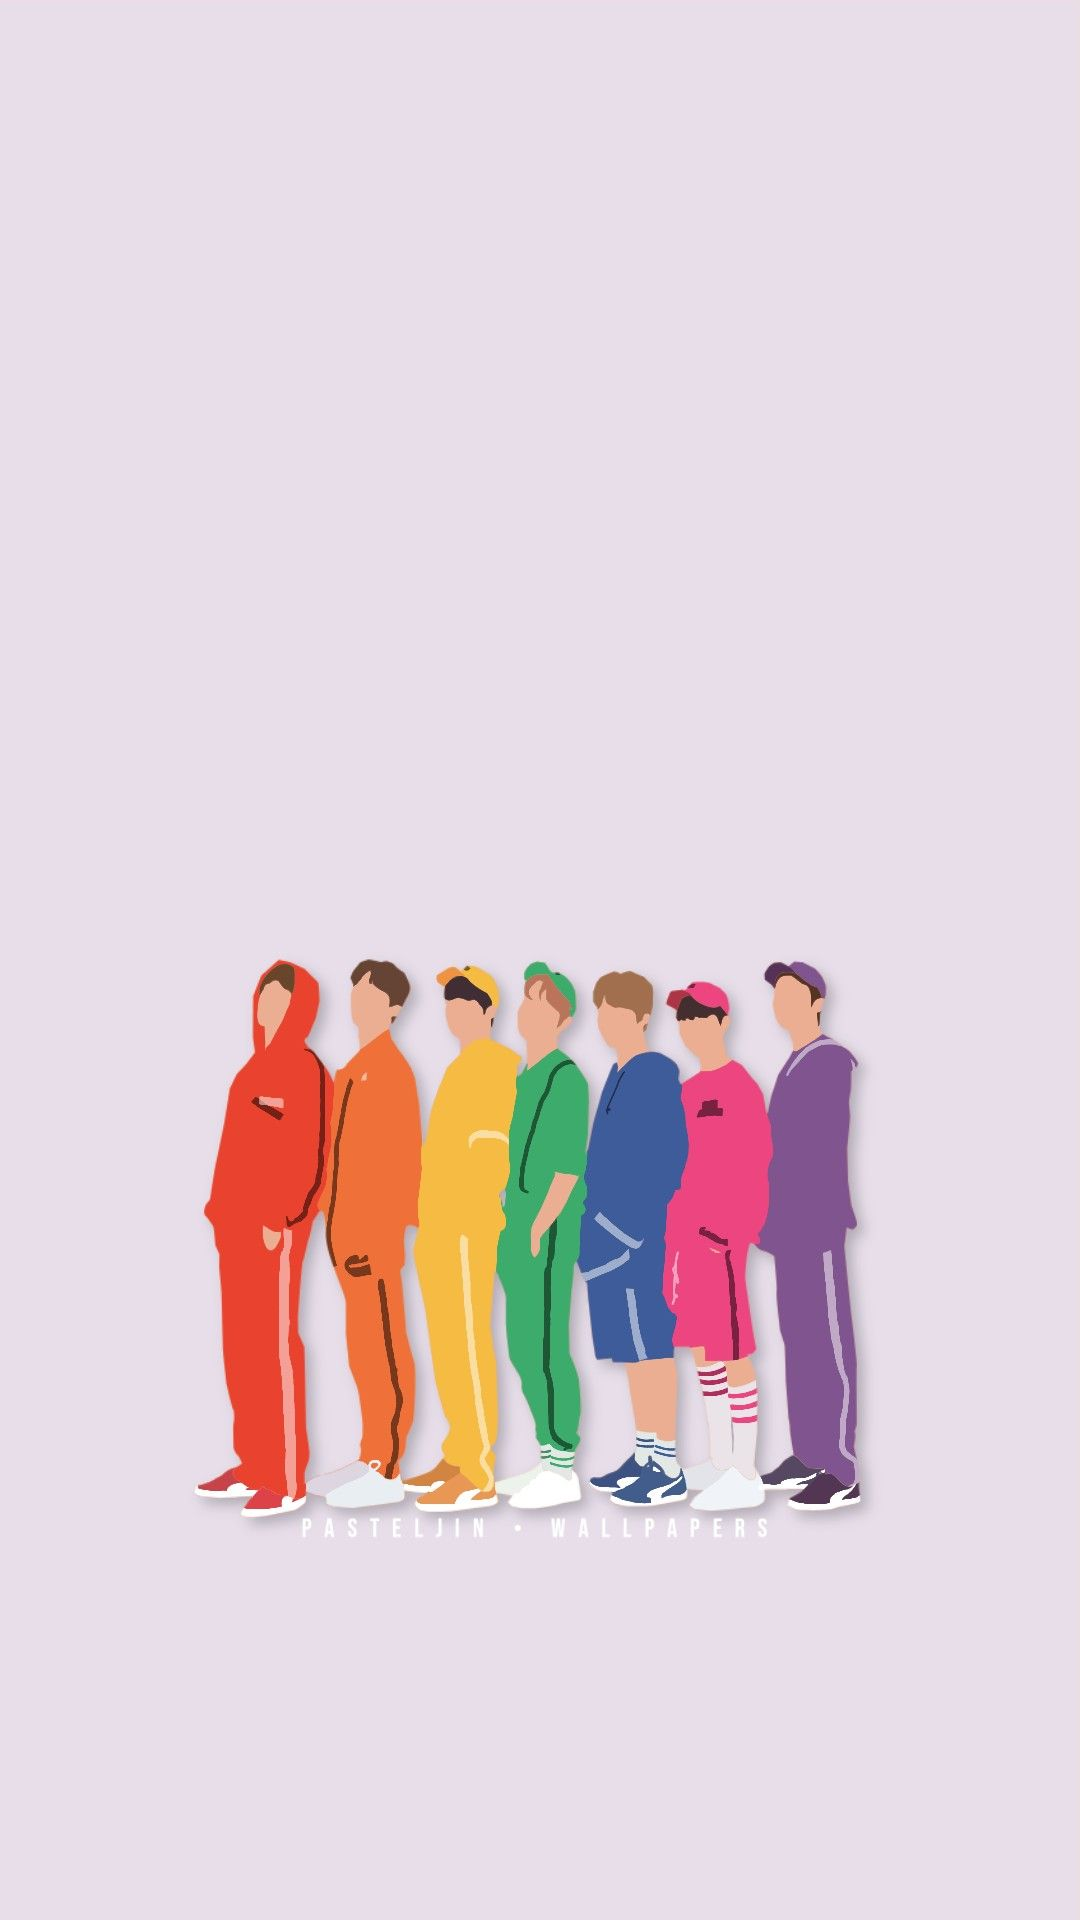 Pin By Yarii Morin On Bts Wallpapers In 2019 Bts